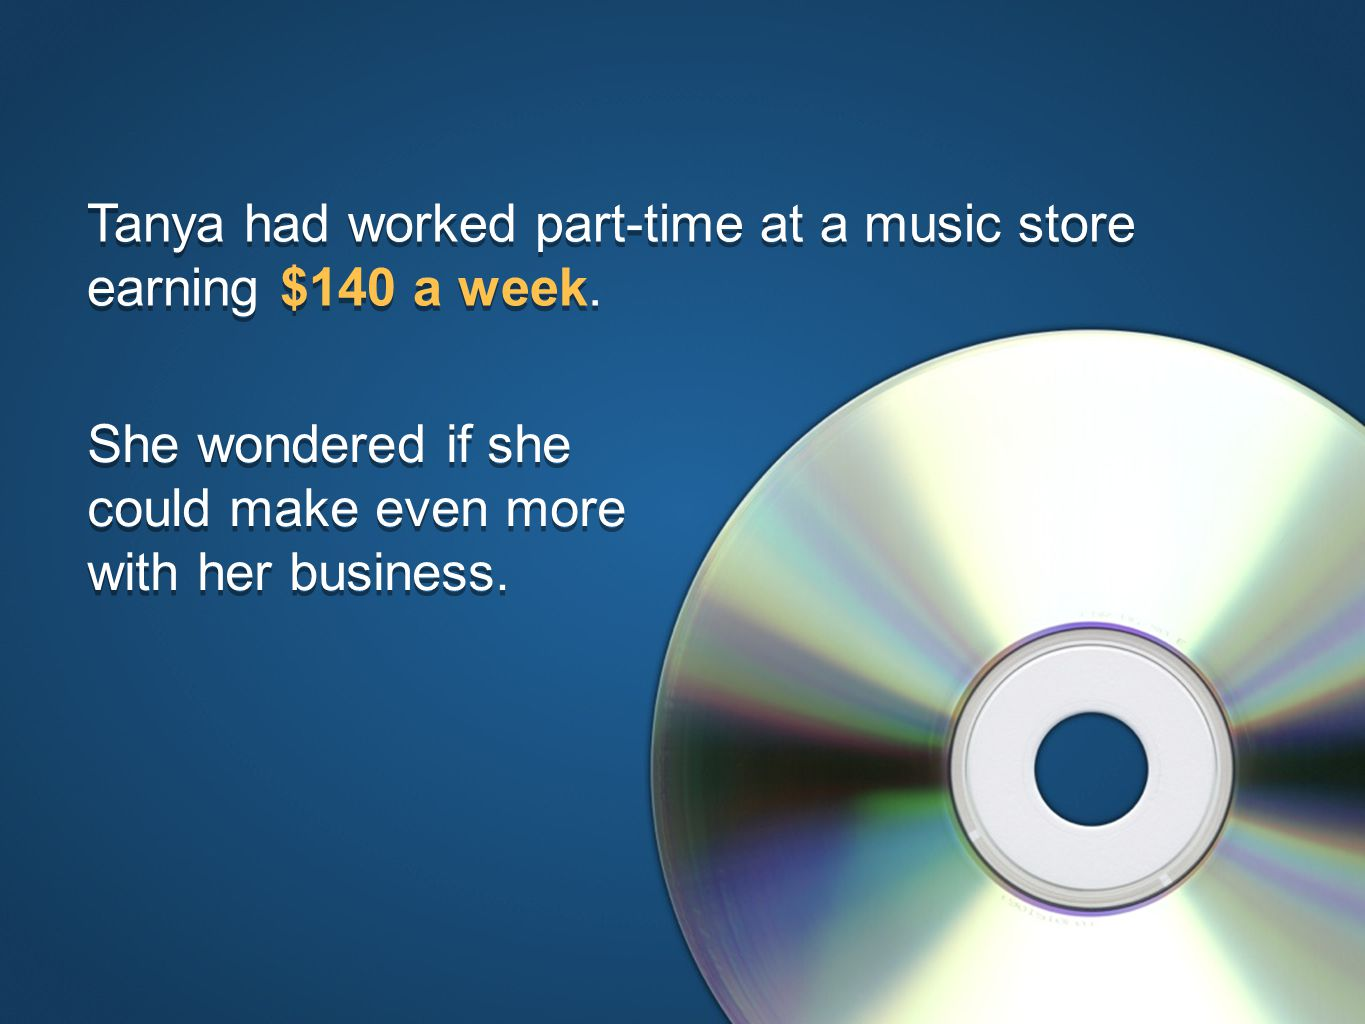 © The National Foundation for Teaching Entrepreneurship (www.nfte.com)www.nfte.com Tanya had worked part-time at a music store earning $140 a week.